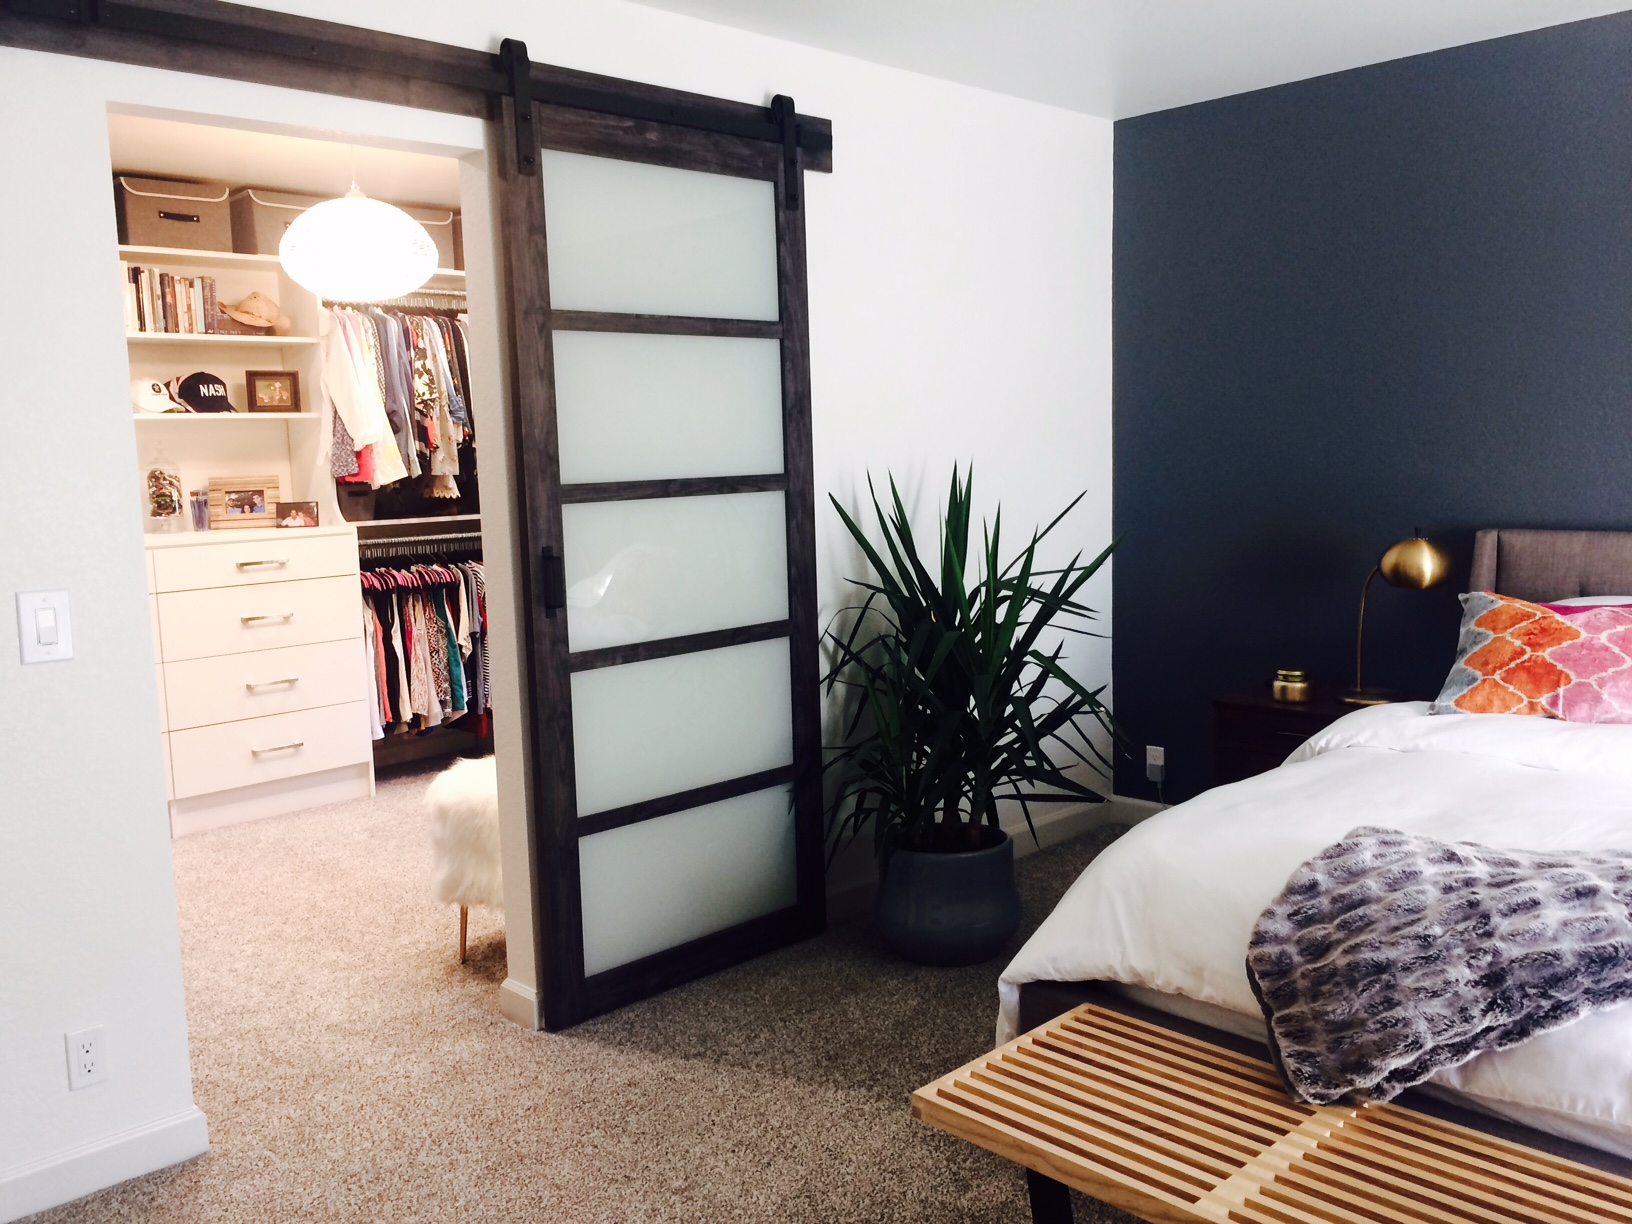 This spacious master closet by Closets of Tulsa was once a small spare bedroom with a separate entry.  Call Closets of Tulsa  now for your FREE consultation and 3-D closet design:  918.609.0214